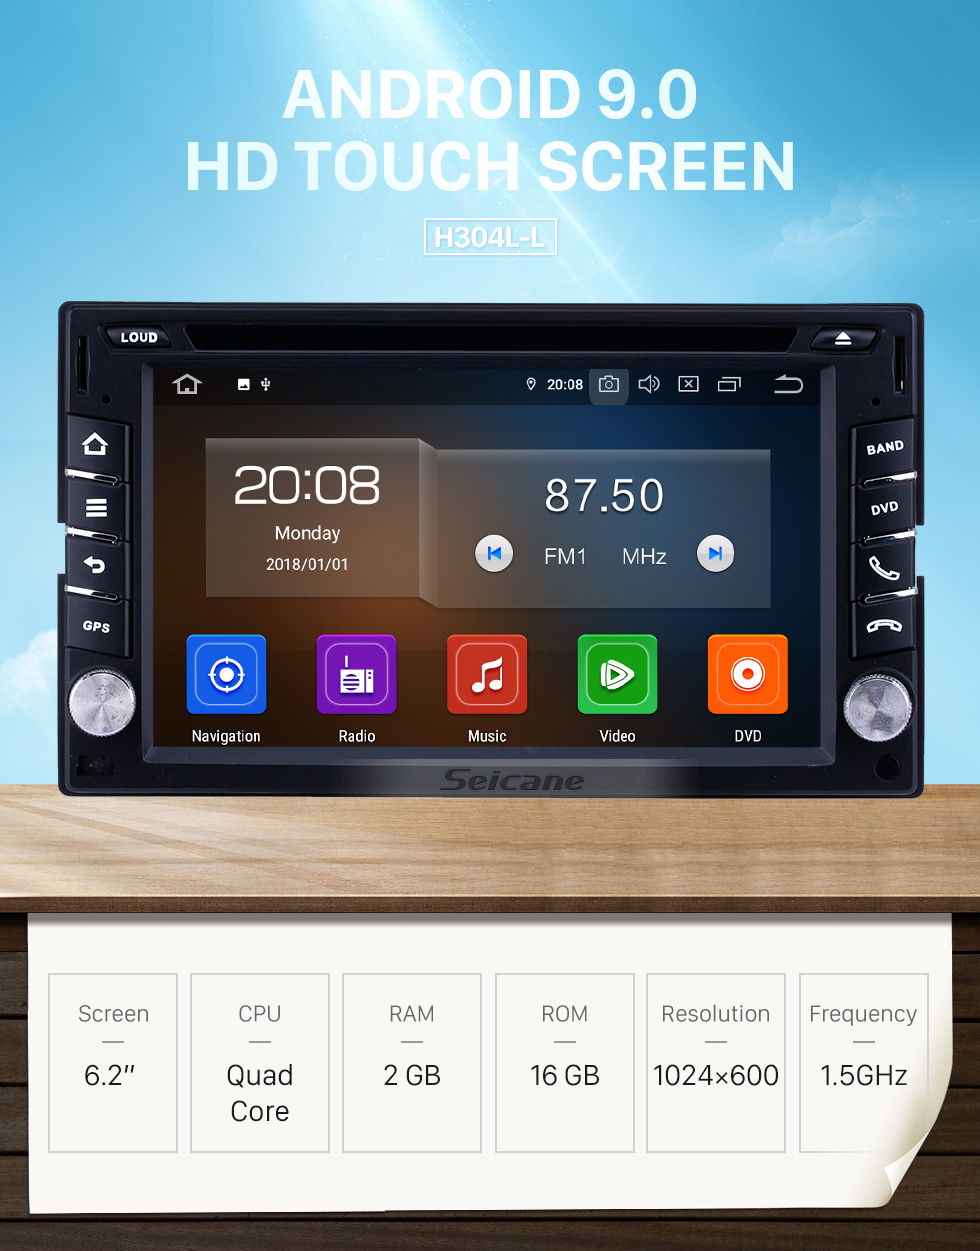 Seicane Android 9.0 HD Touchscreen 6.2 inch GPS Navigation Universal Radio Bluetooth AUX WIFI USB Carplay Music support 1080P Digital TV TPMS